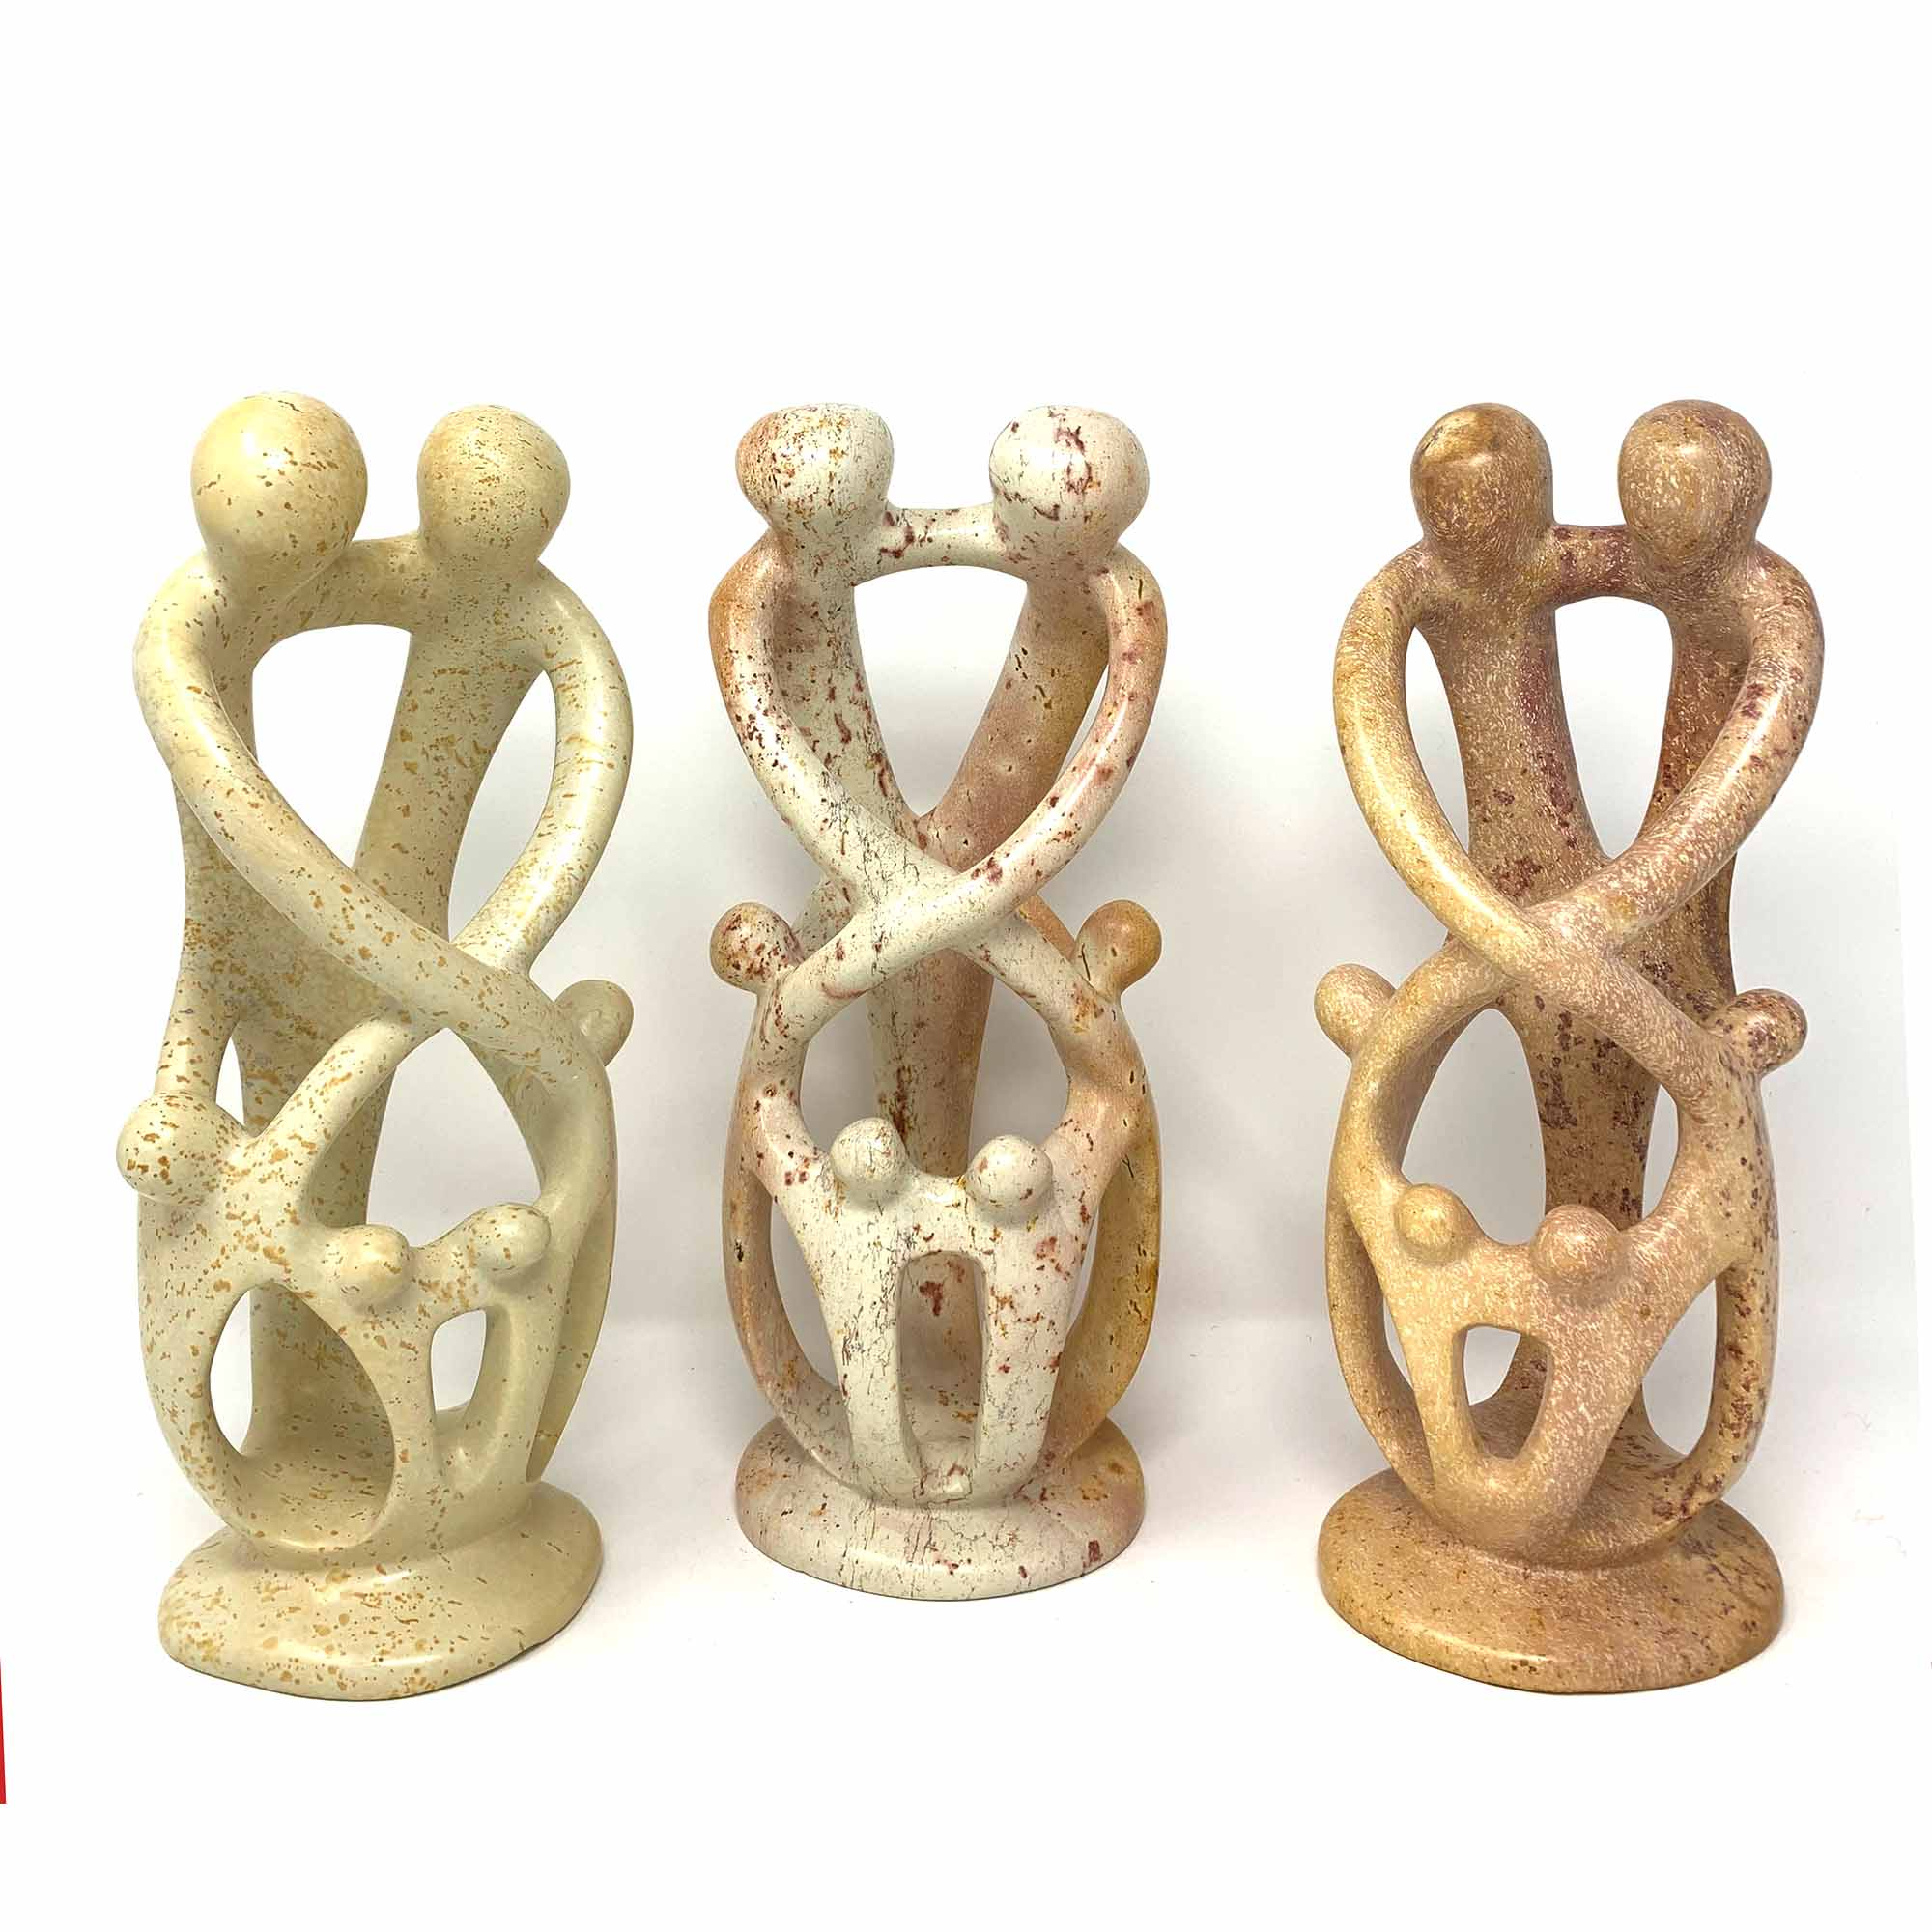 Soapstone Families - 10 inch